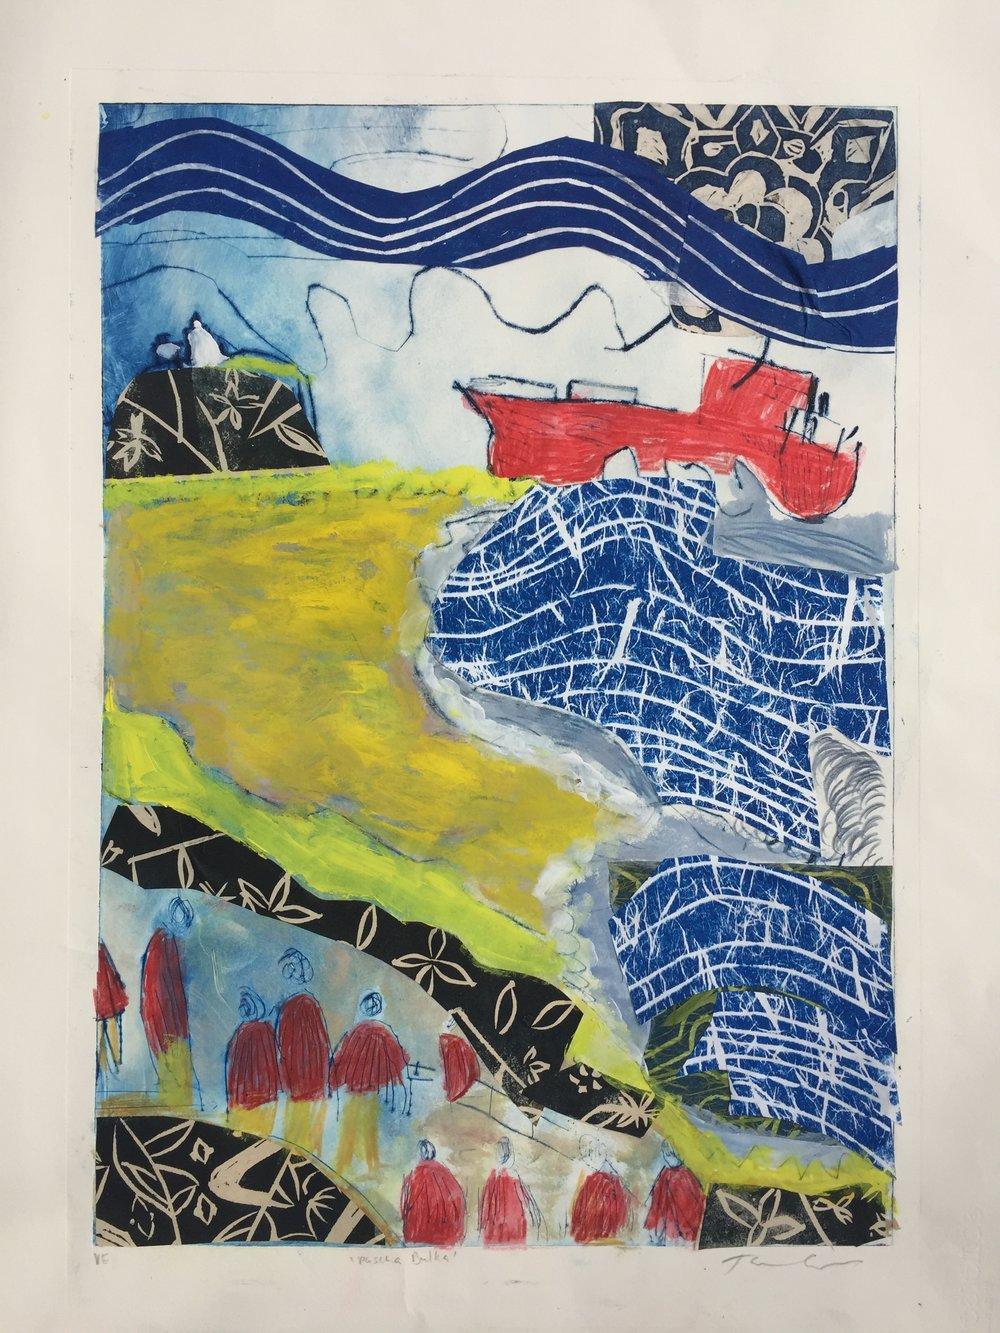 Jane Collins_Pasha Bulka_2018_printmaking, collage and paint_76 x 56cm_$650.00.jpg